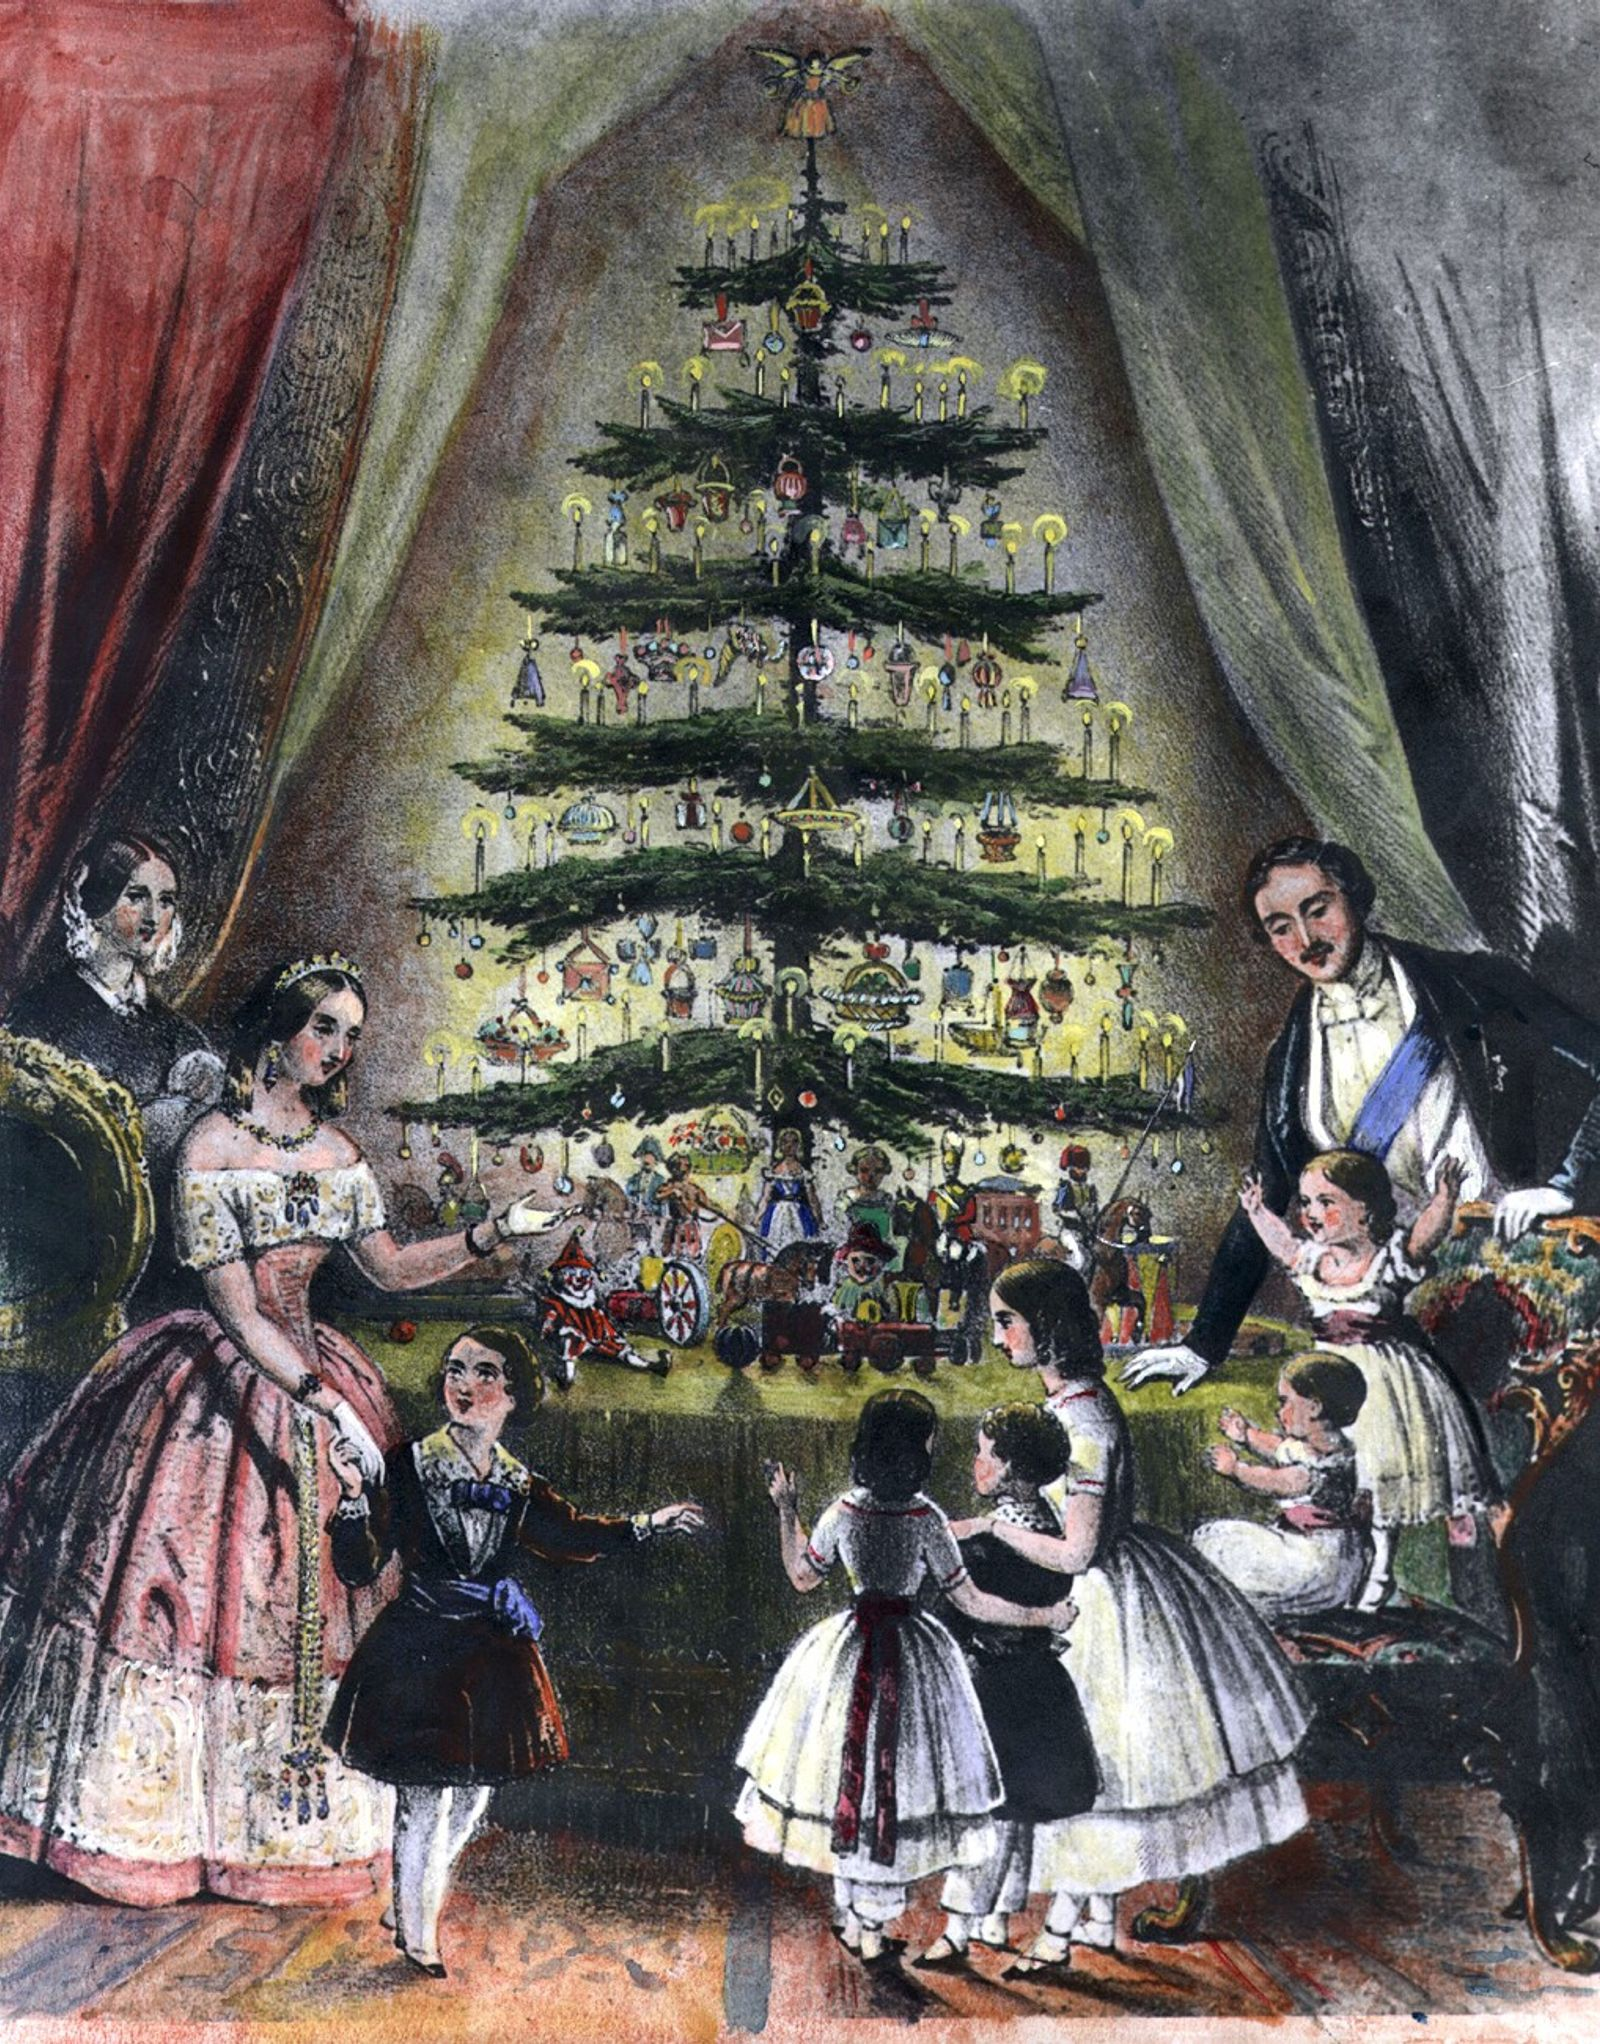 In December 1848, an illustration showed Queen Victoria, Prince Albert, and their children admiring a Christmas ...